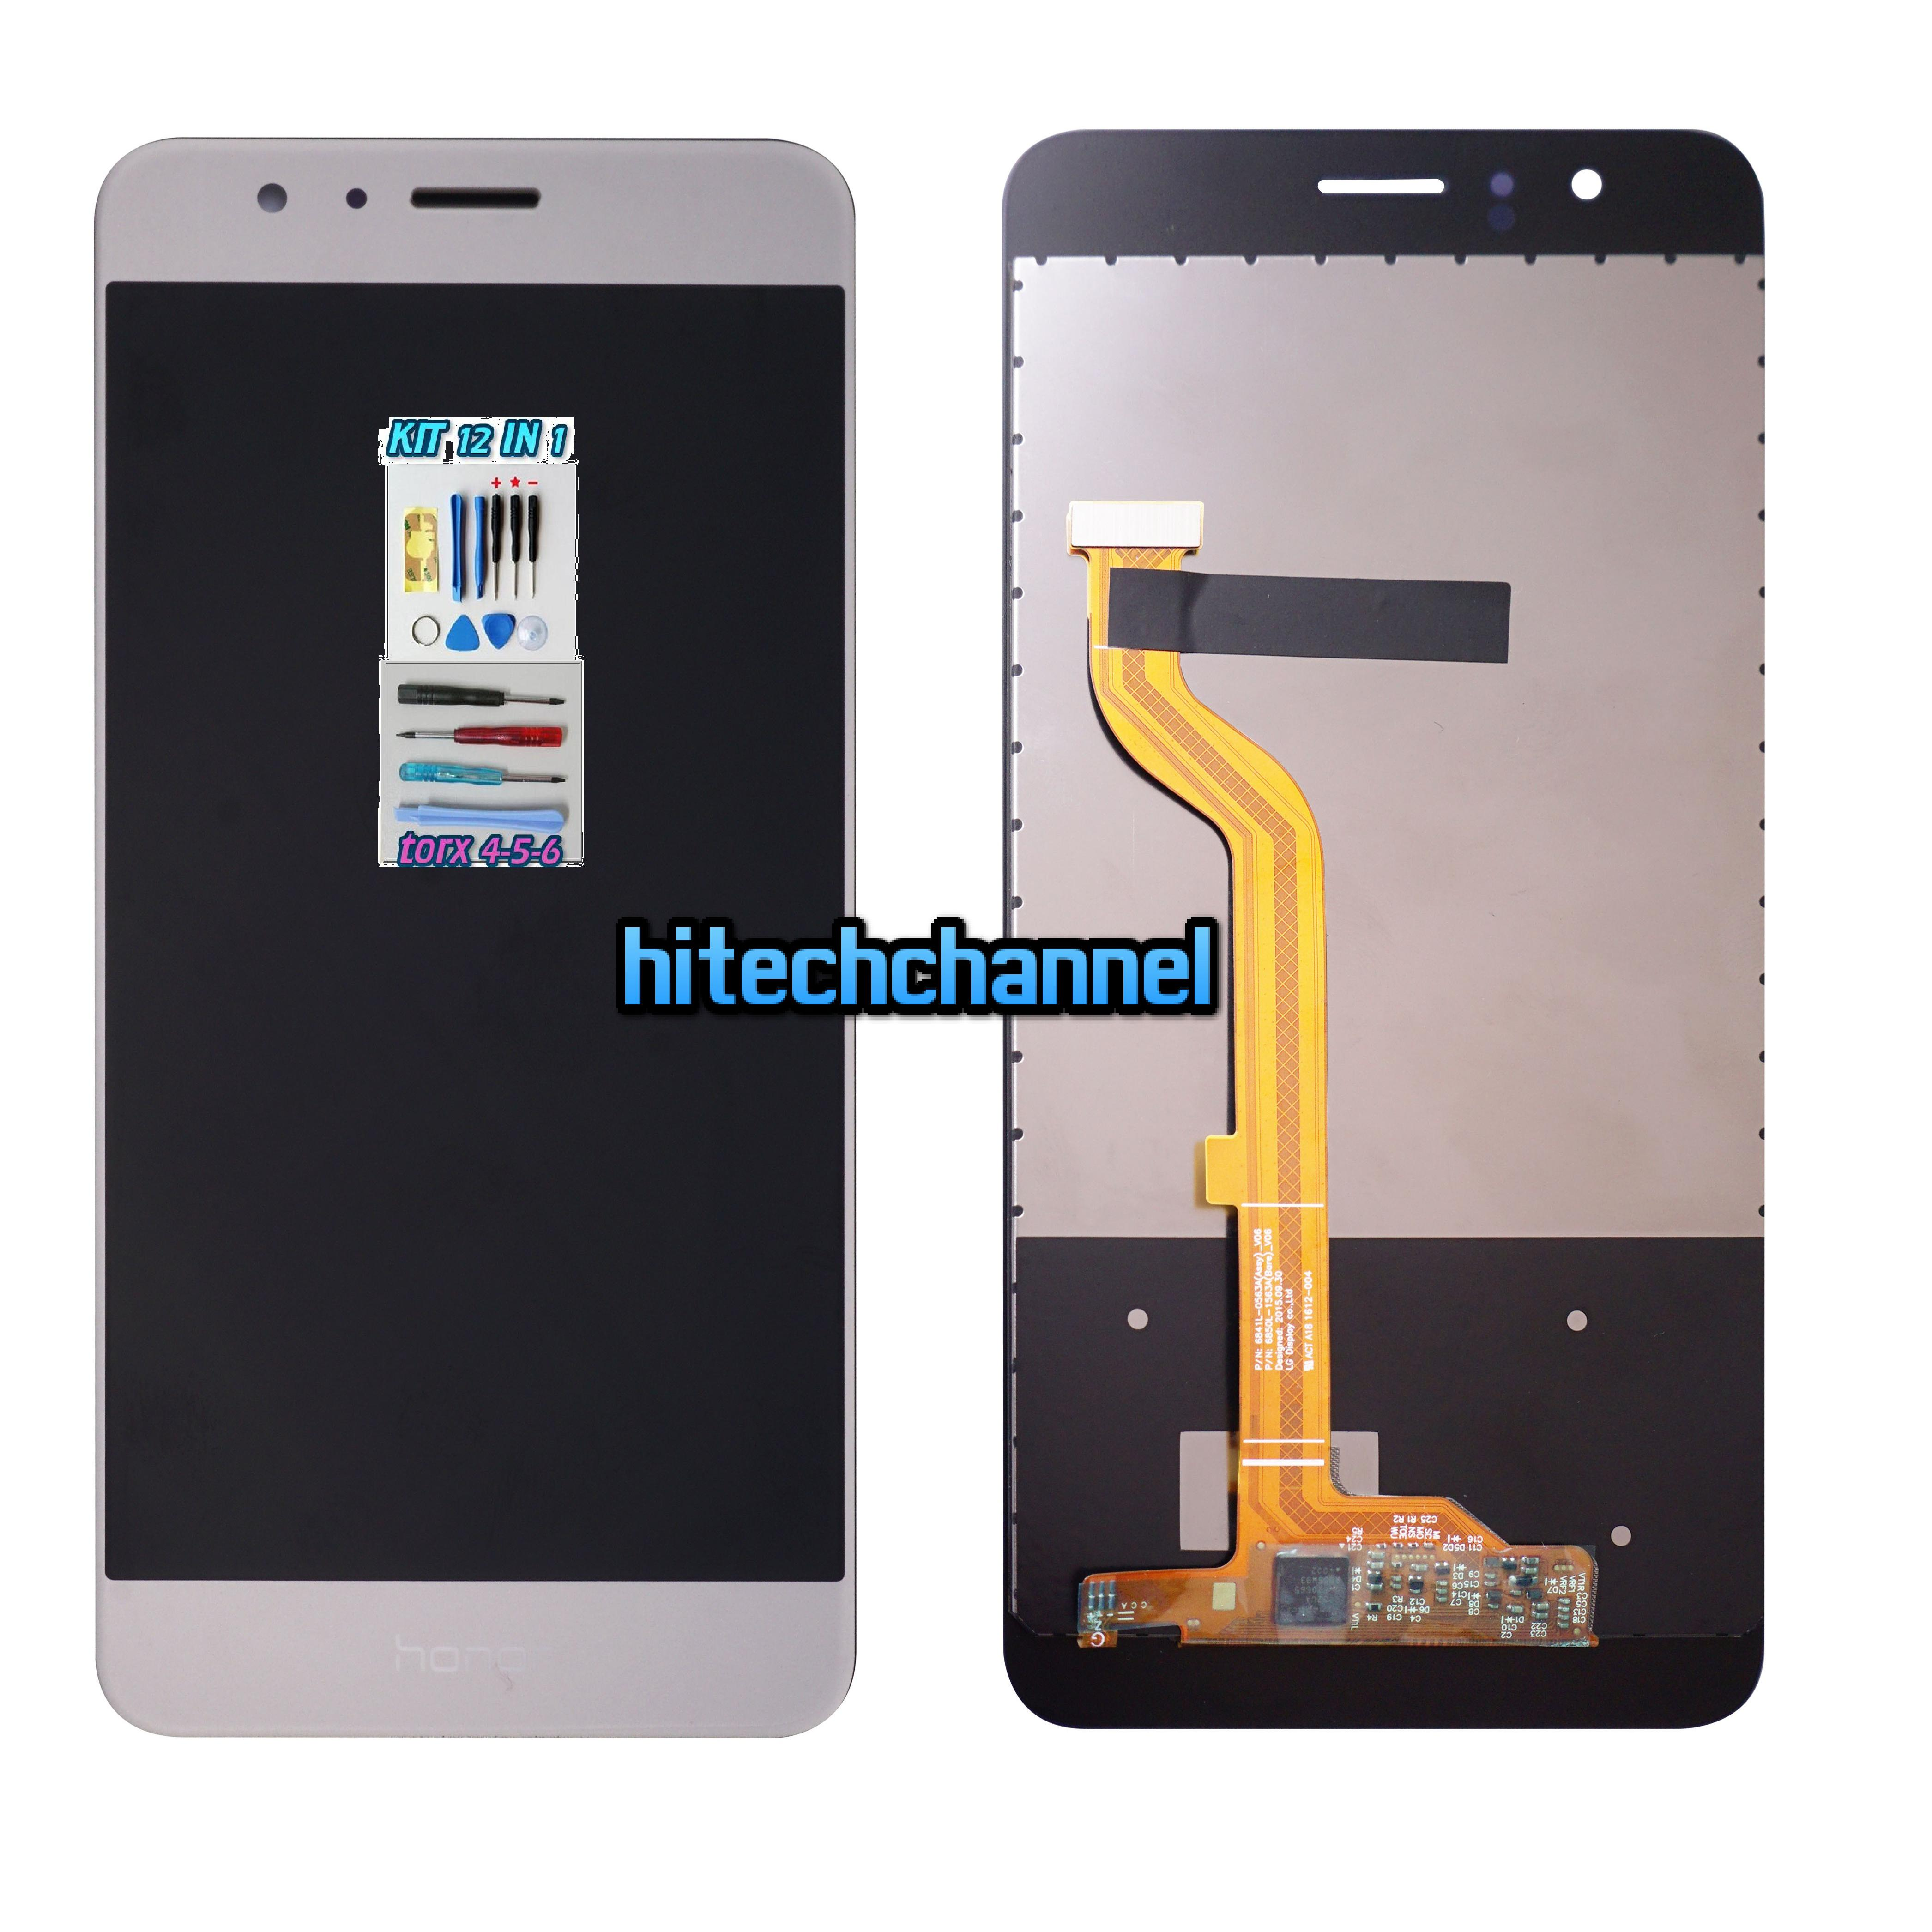 LCD DISPLAY TOUCH SCREEN ORIGINALE Per HUAWEI HONOR 8 ORO GOLD FDR-L09+ b7000 e kit 9 in 1+biadesivo